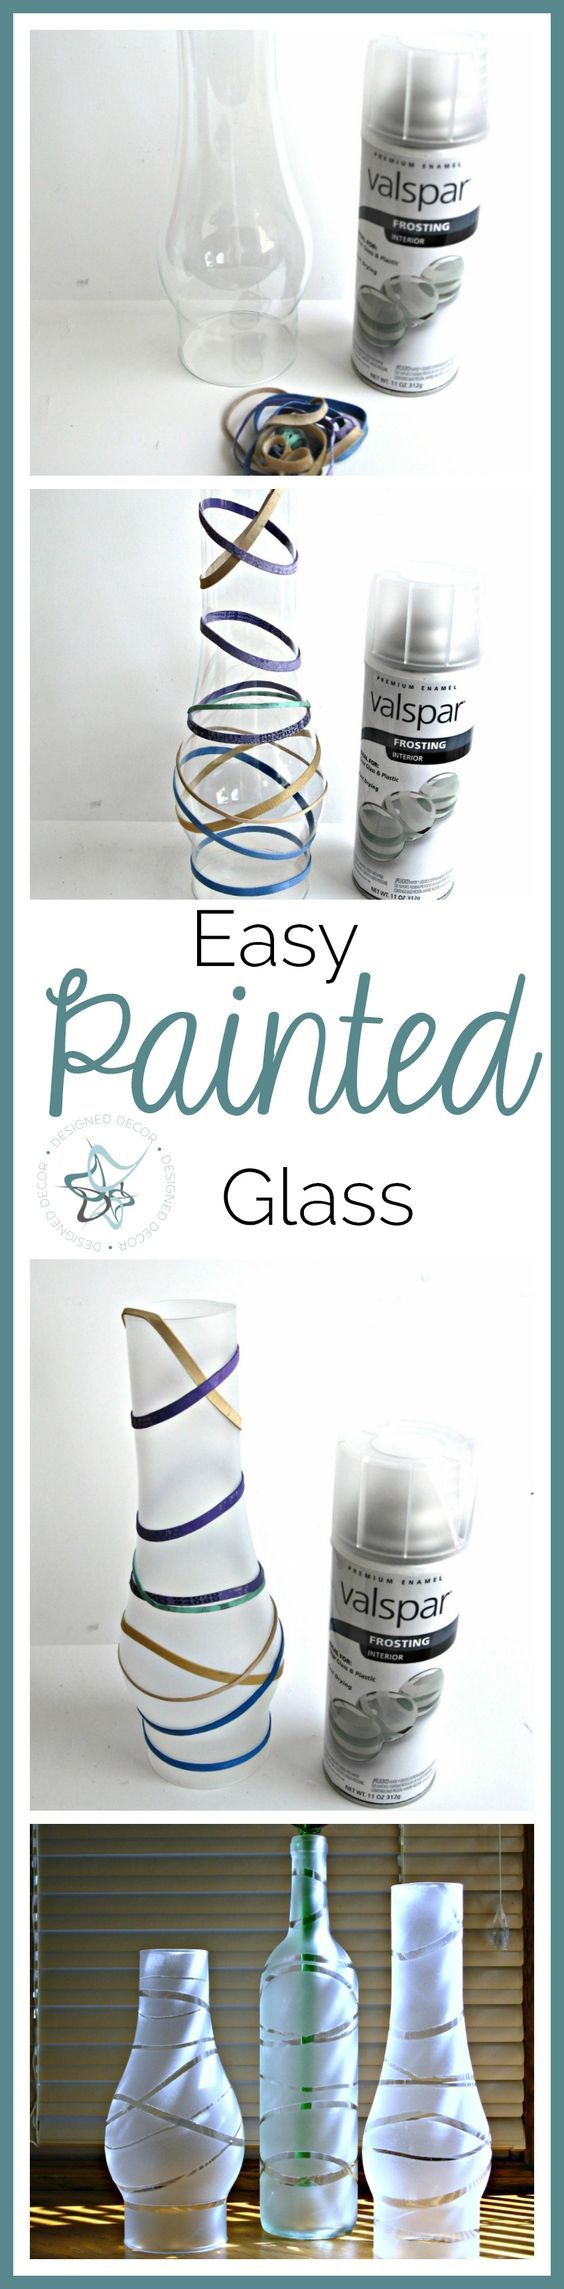 Easy Painted Glass with Spray paint - Frosted glass the easy way. www.designeddecor.com